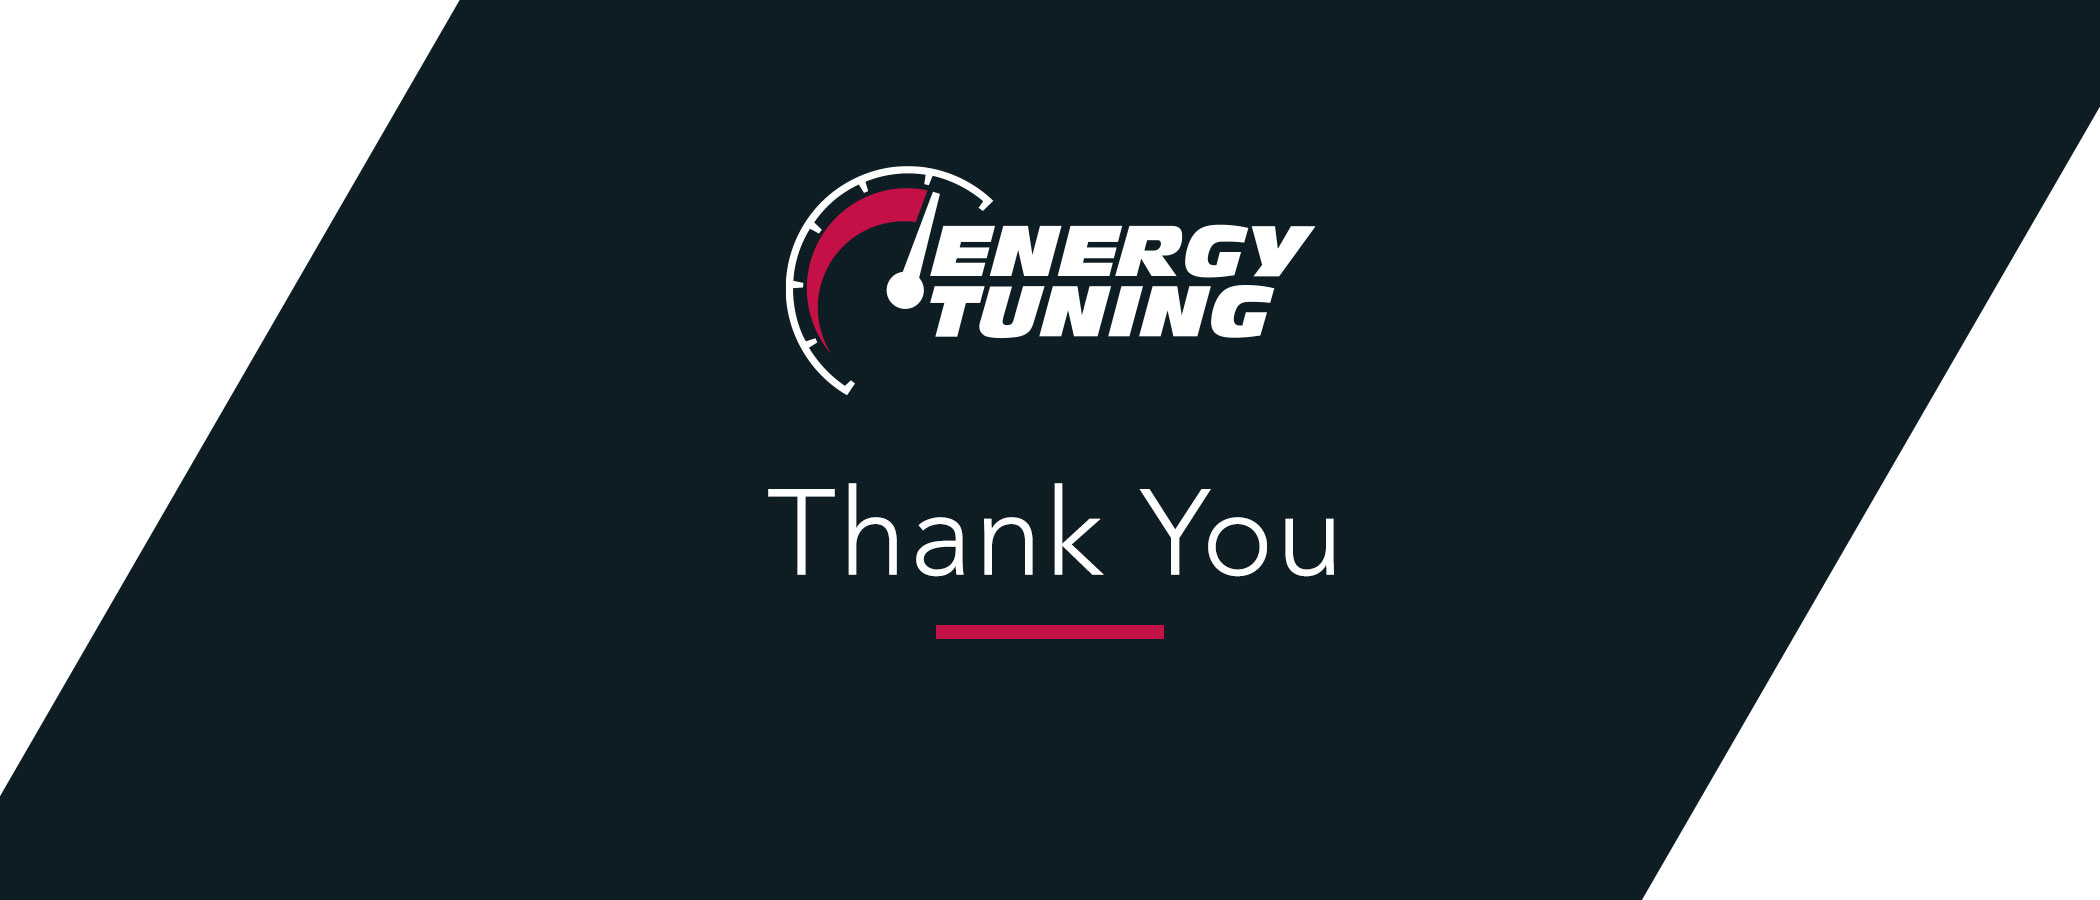 Thank You For Contacting Energy Tuning